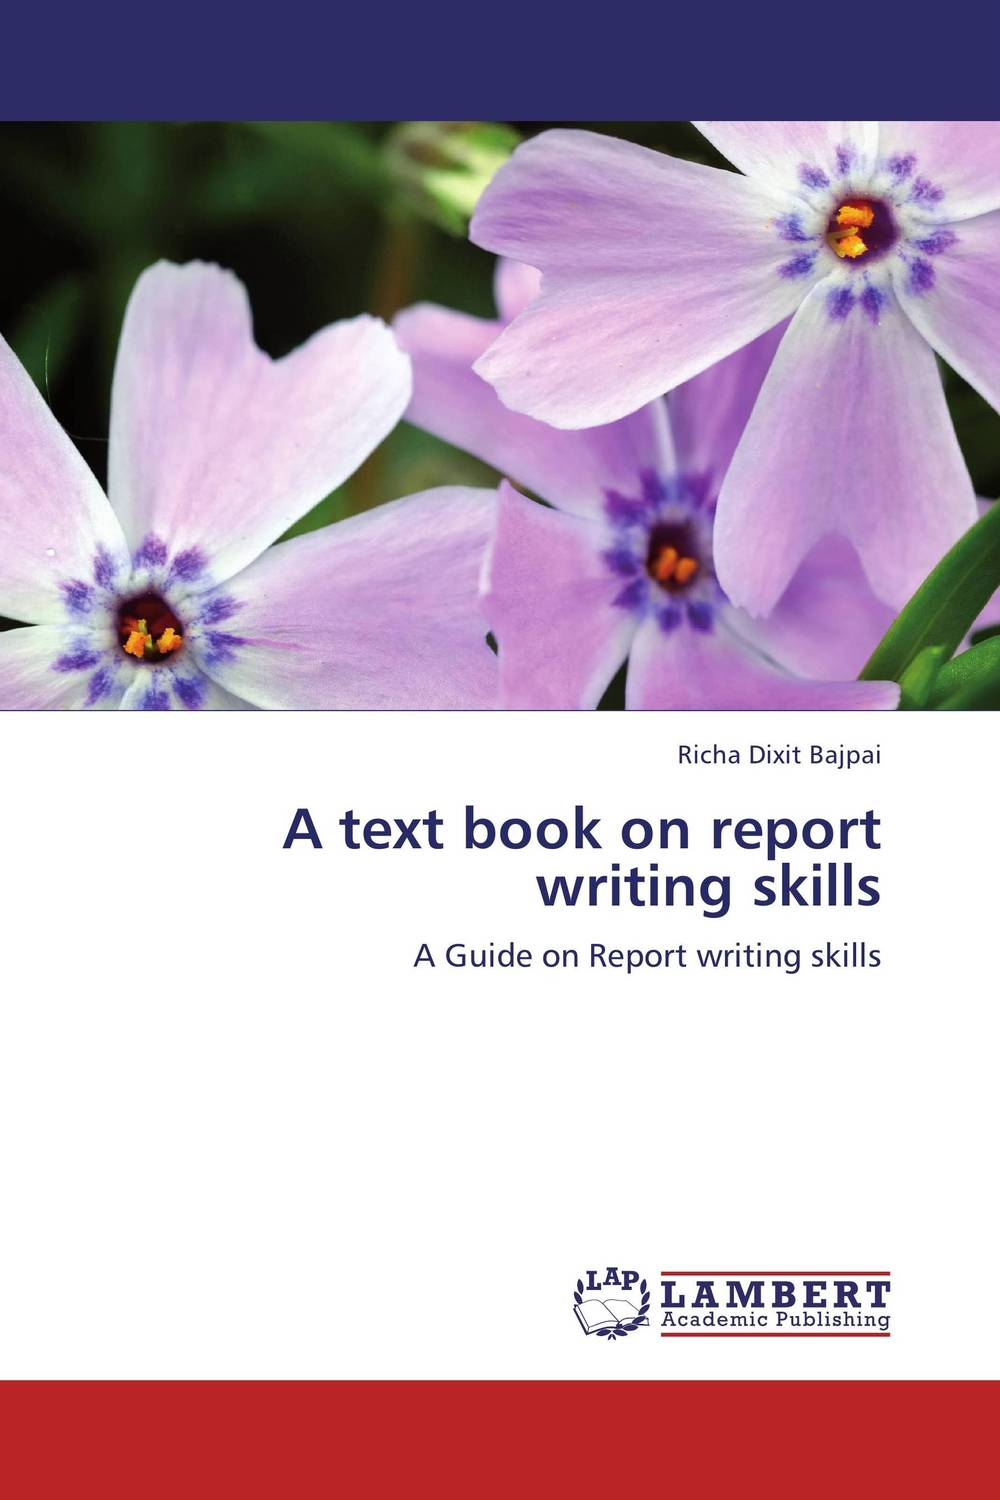 A text book on report writing skills